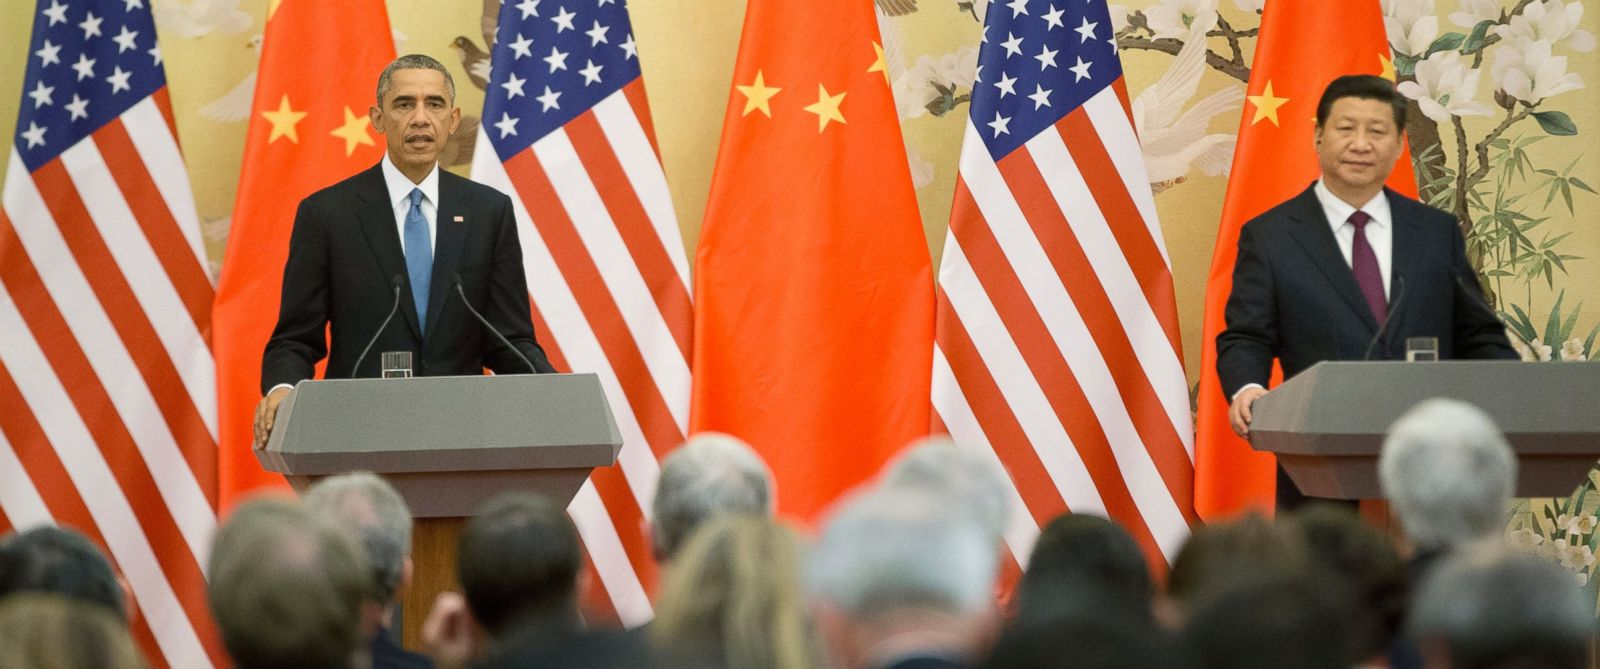 U.S. President Barack Obama, left, and Chinese President Xi Jinping, right, speak during a joint news conference at the Great Hall of the People in Beijing, Nov. 12, 2014.